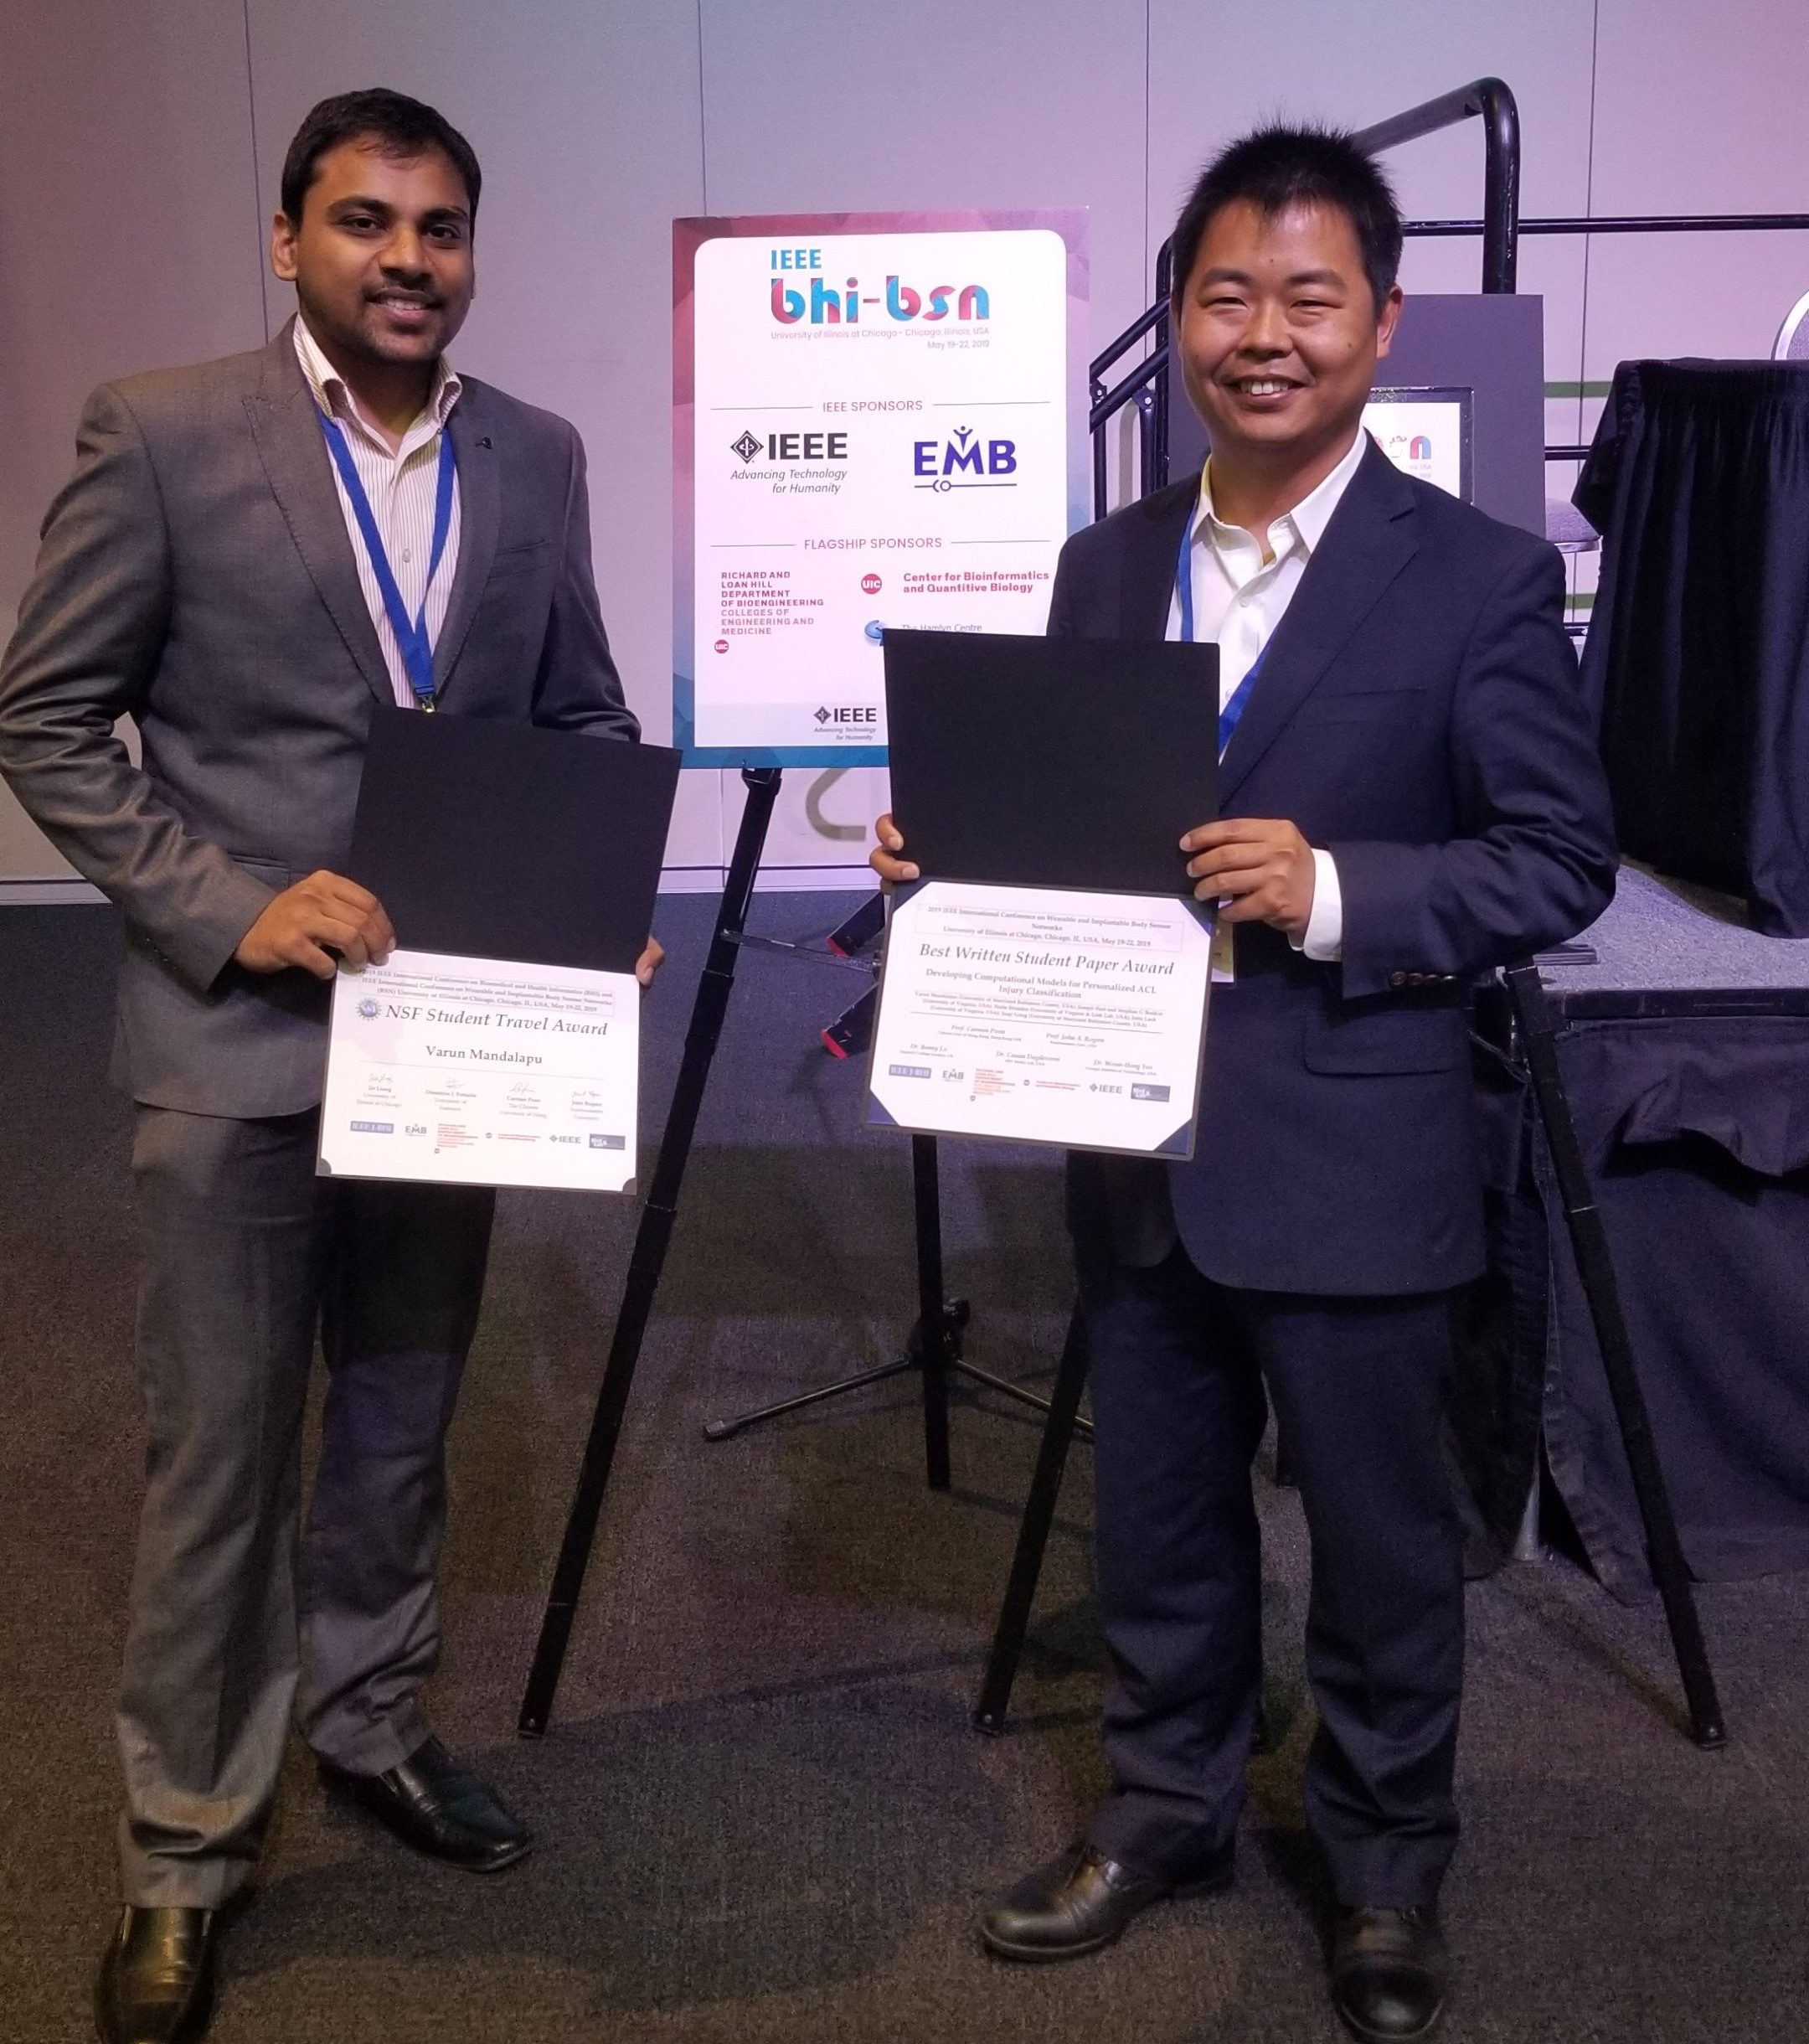 Ph.D. student, Varun Mandalapu, wins Best Student Paper Award at IEEE BHI-BSN 2019